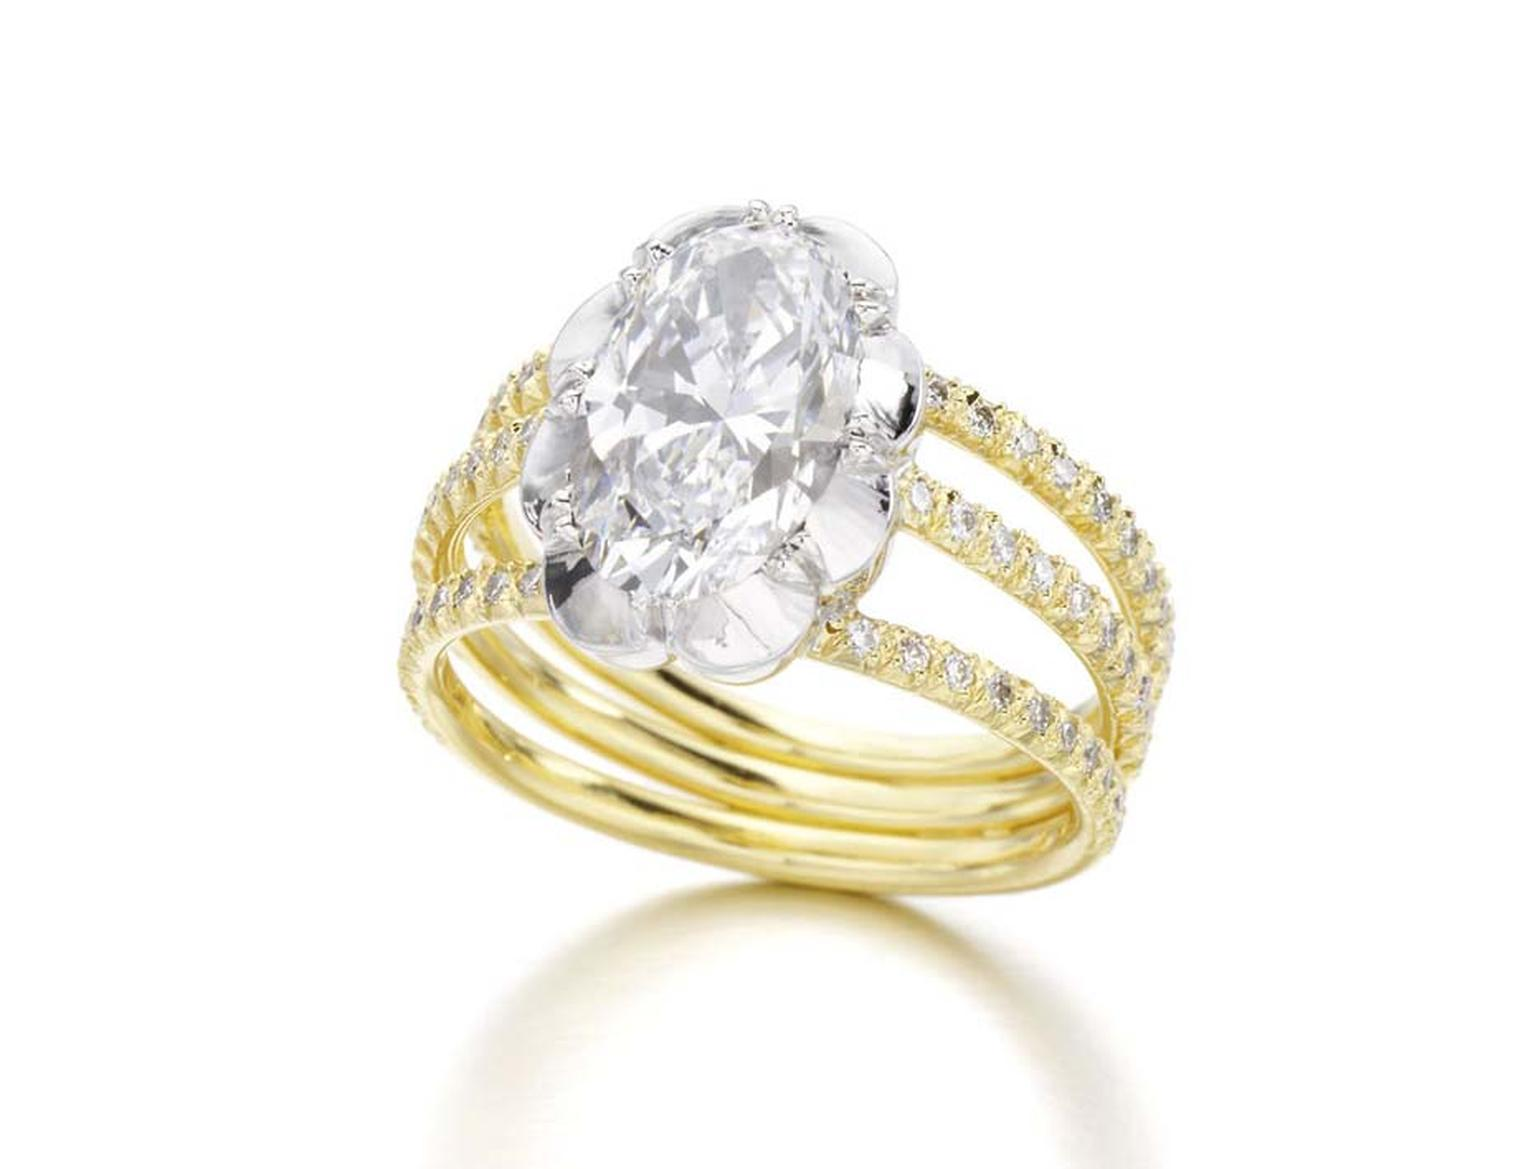 Jessica McCormack Oval Diamond Trio engagement ring in yellow gold set with a 2.24ct oval-cut diamond mounted in a Georgian-style cut.